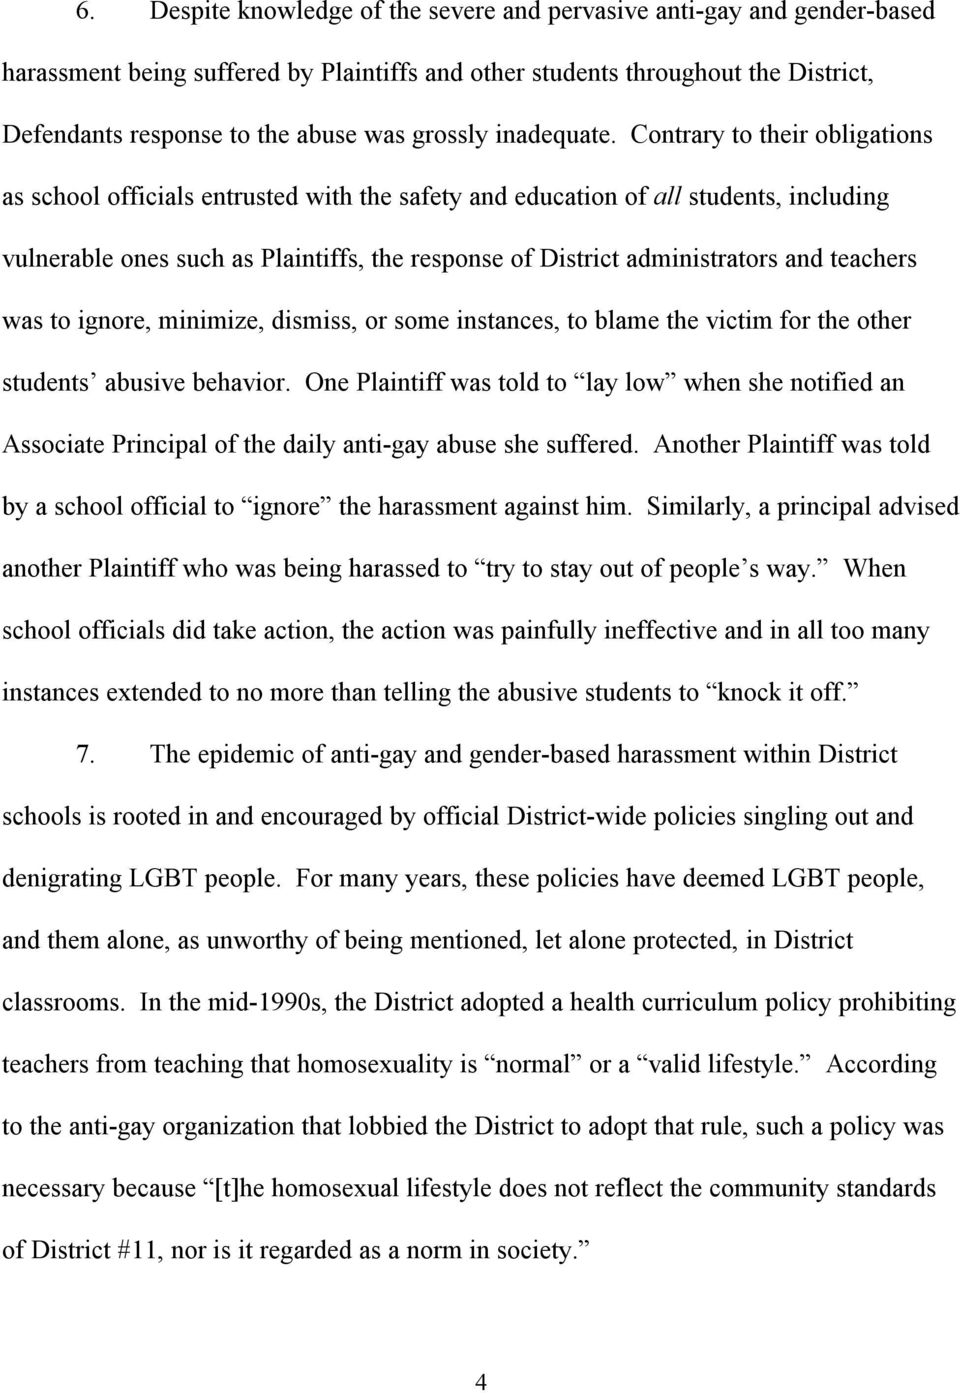 Contrary to their obligations as school officials entrusted with the safety and education of all students, including vulnerable ones such as Plaintiffs, the response of District administrators and